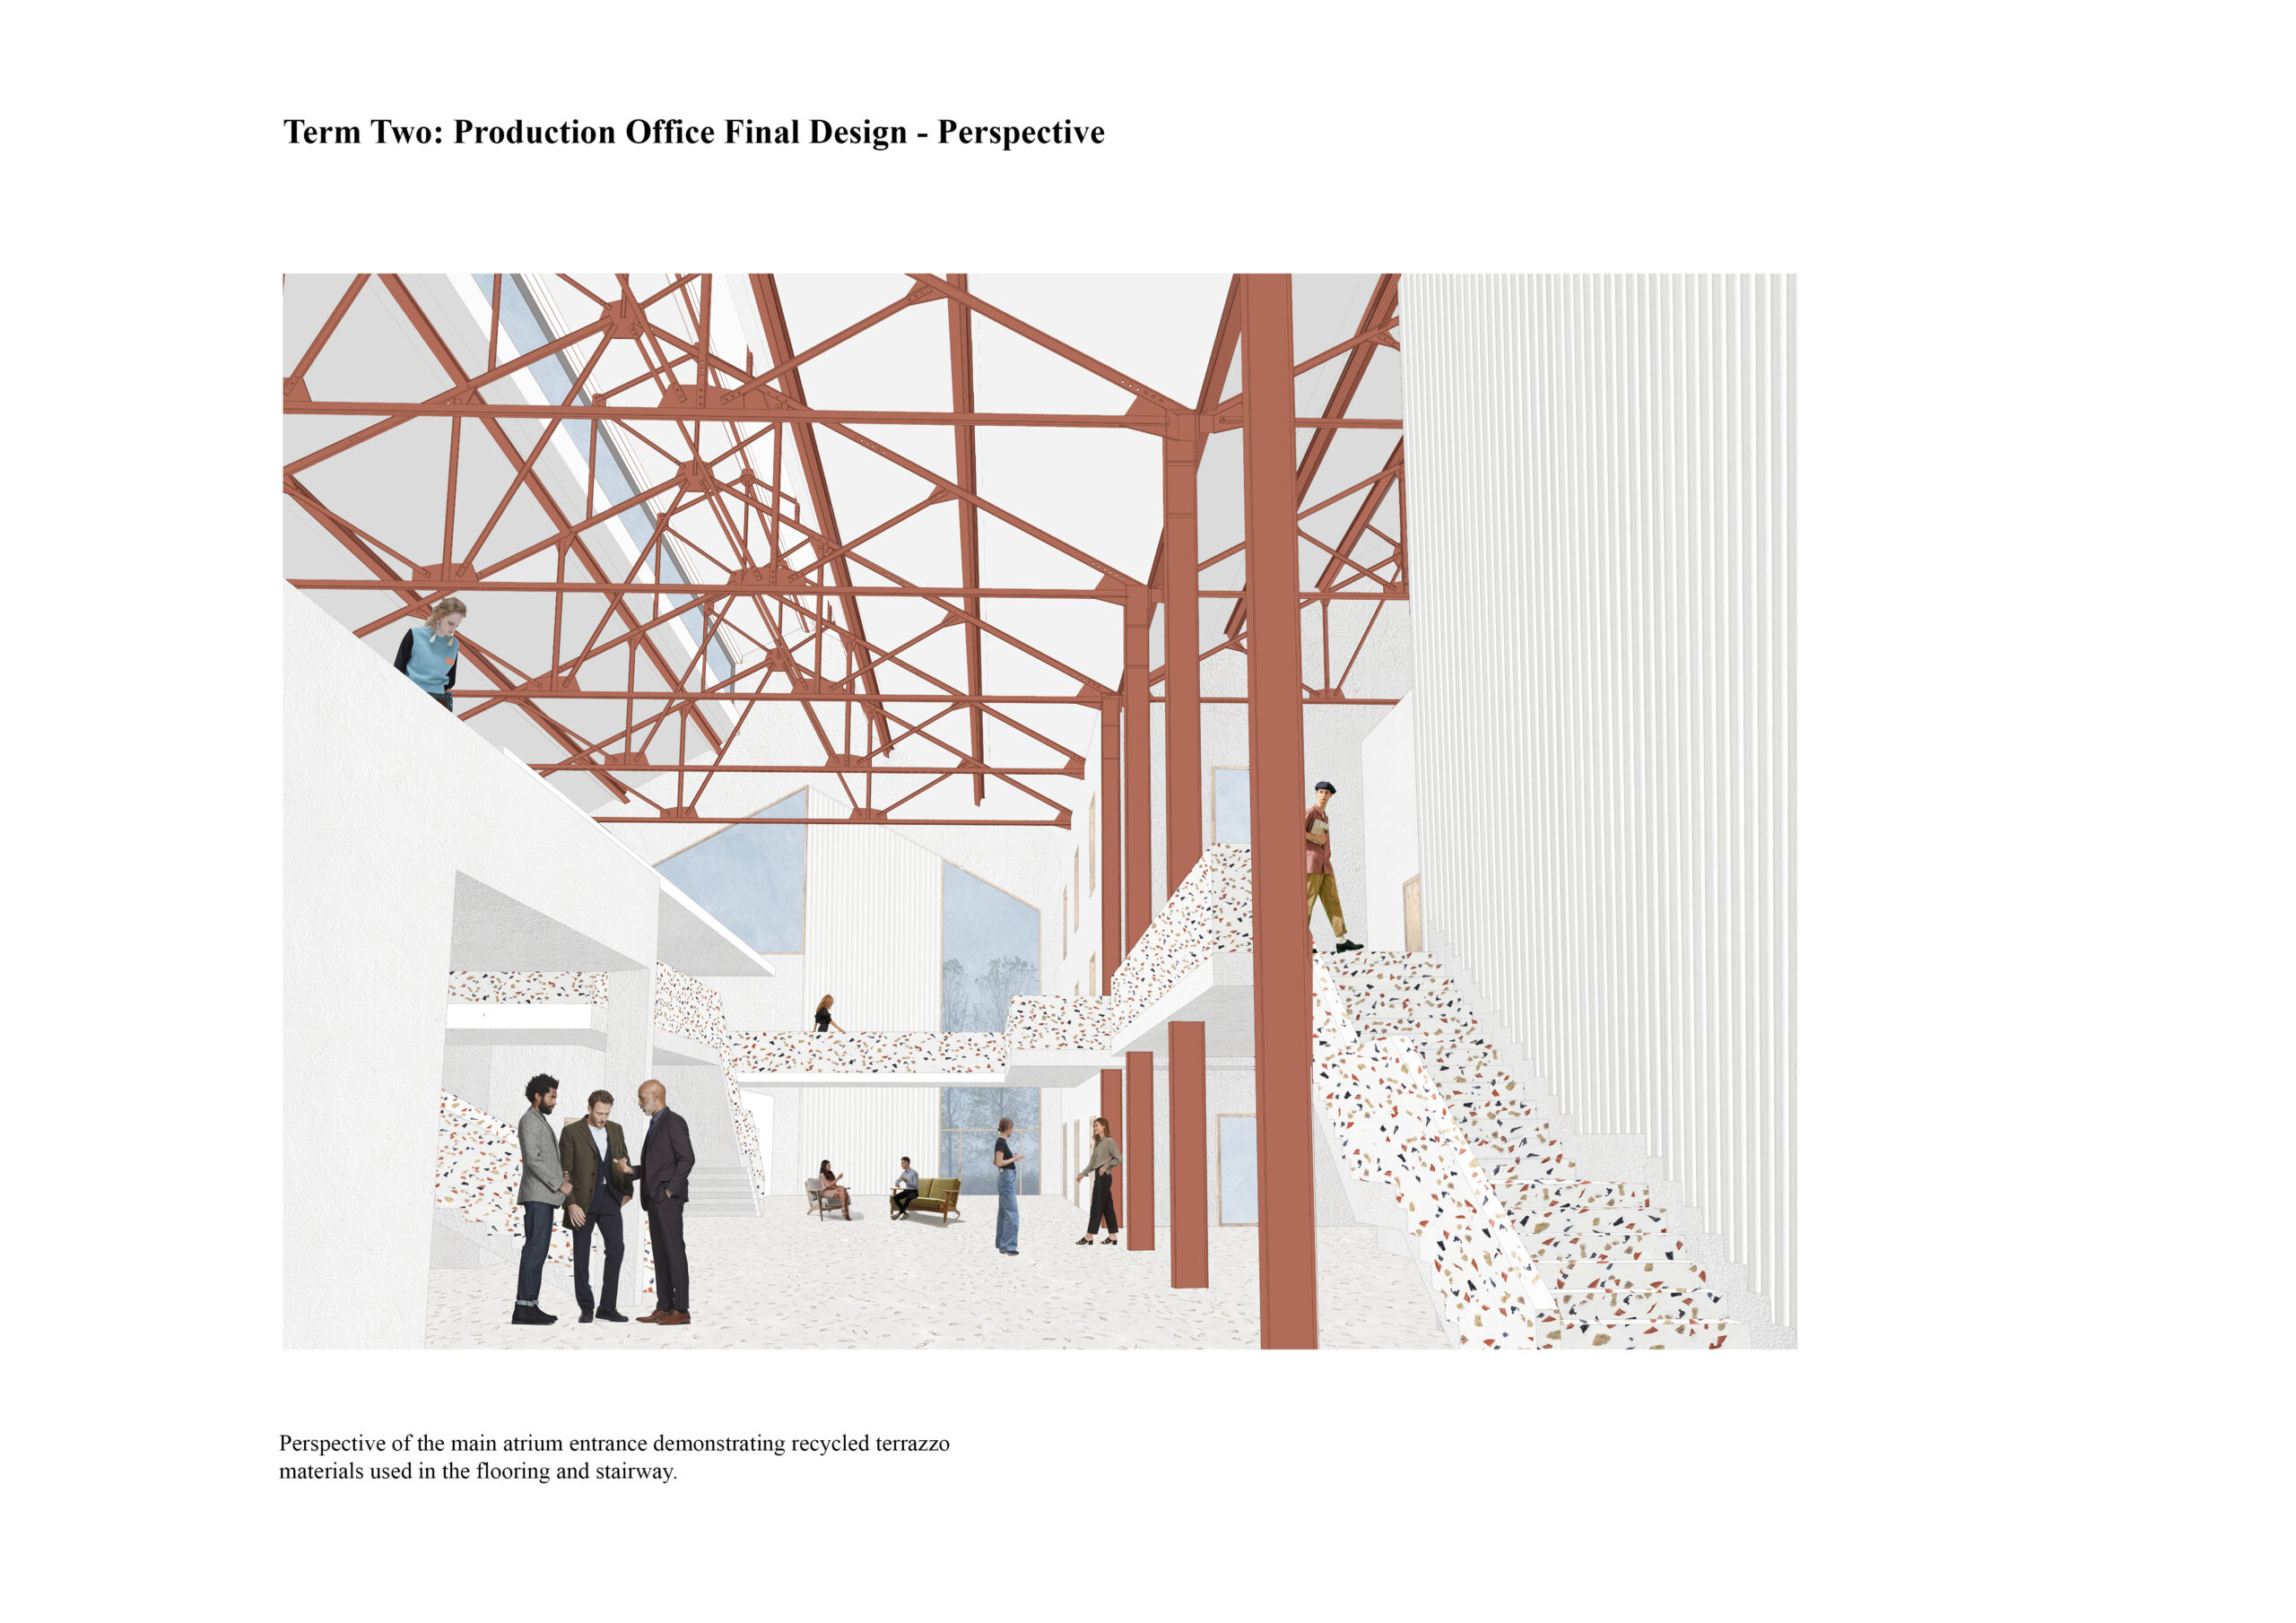 Portfolio Page of a perspective of the production office, focusing on the main atrium space demonstrating recycled terrazzo materials used in the flooring and the stairway.